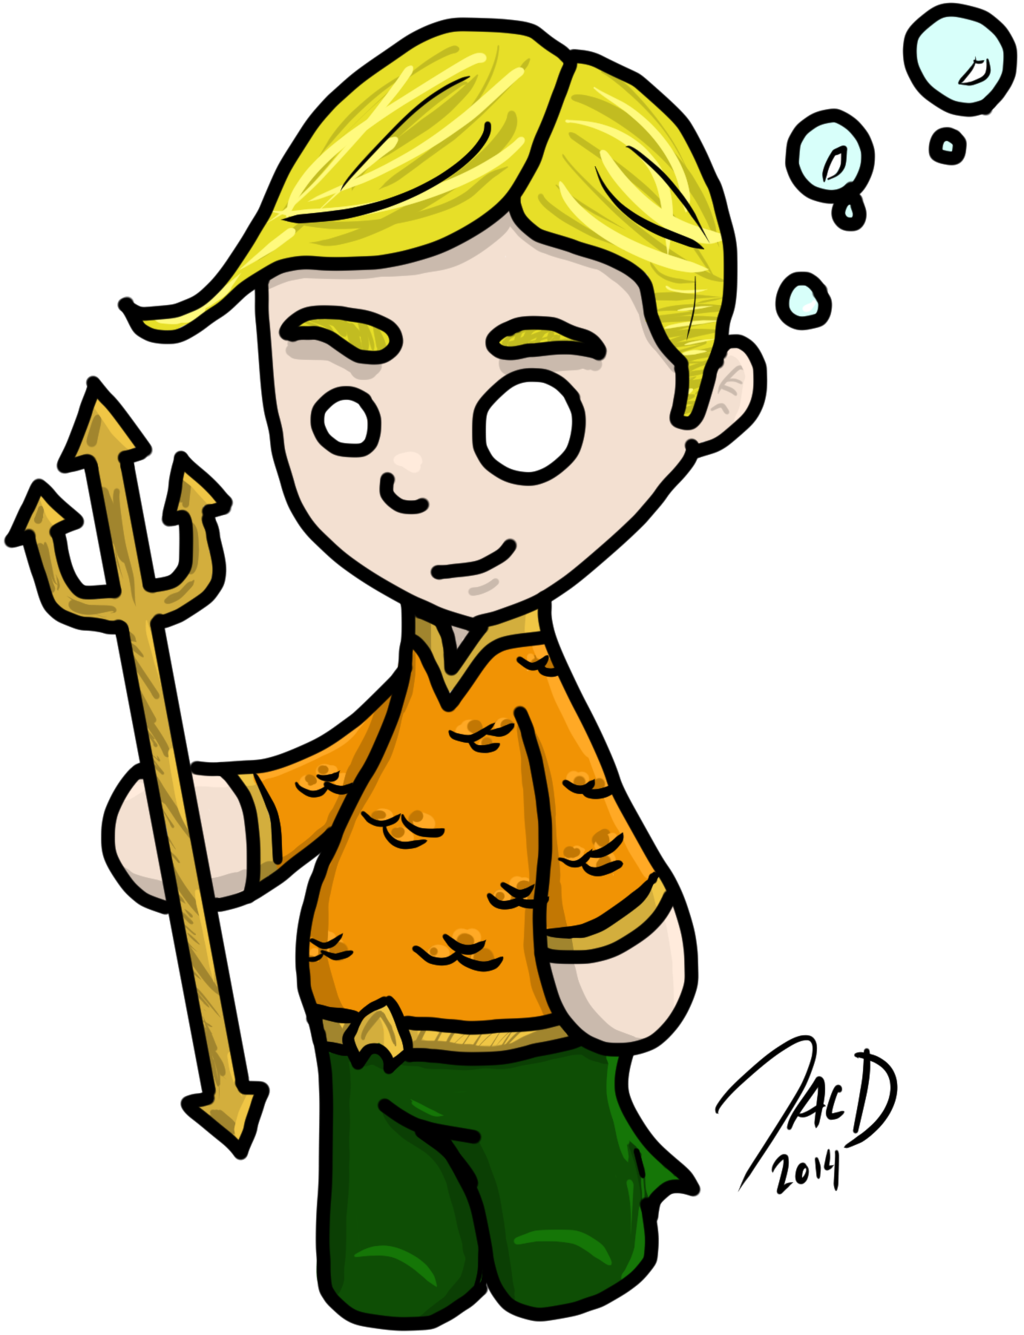 svg library download Aquaman drawing cartoon. Human behavior plant clip